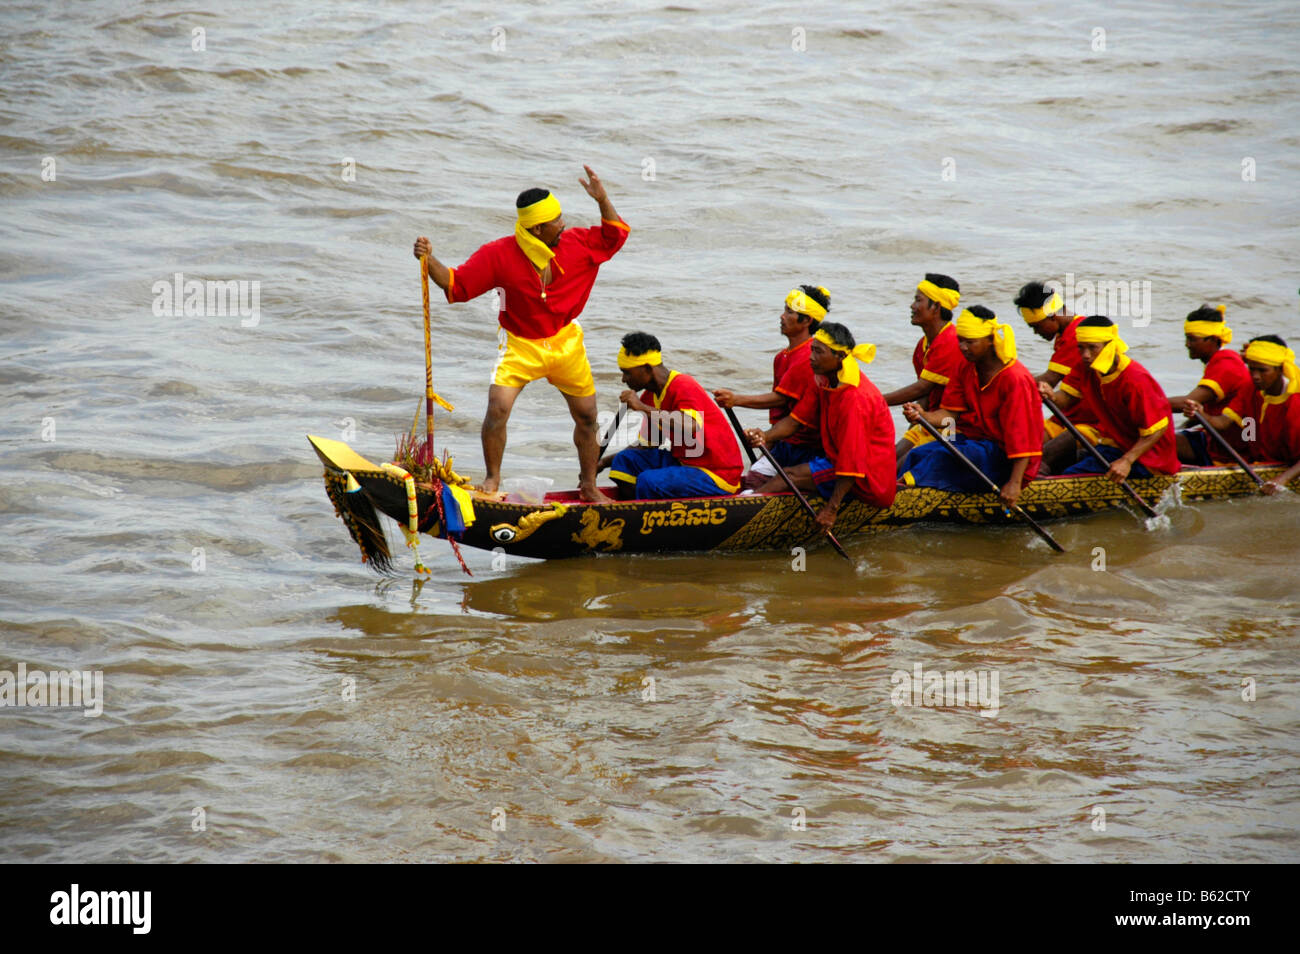 Big rowing boat with many rowers and the leading steering man, Water Festival, Phnom Penh, Cambodia, Southeast Asia Stock Photo